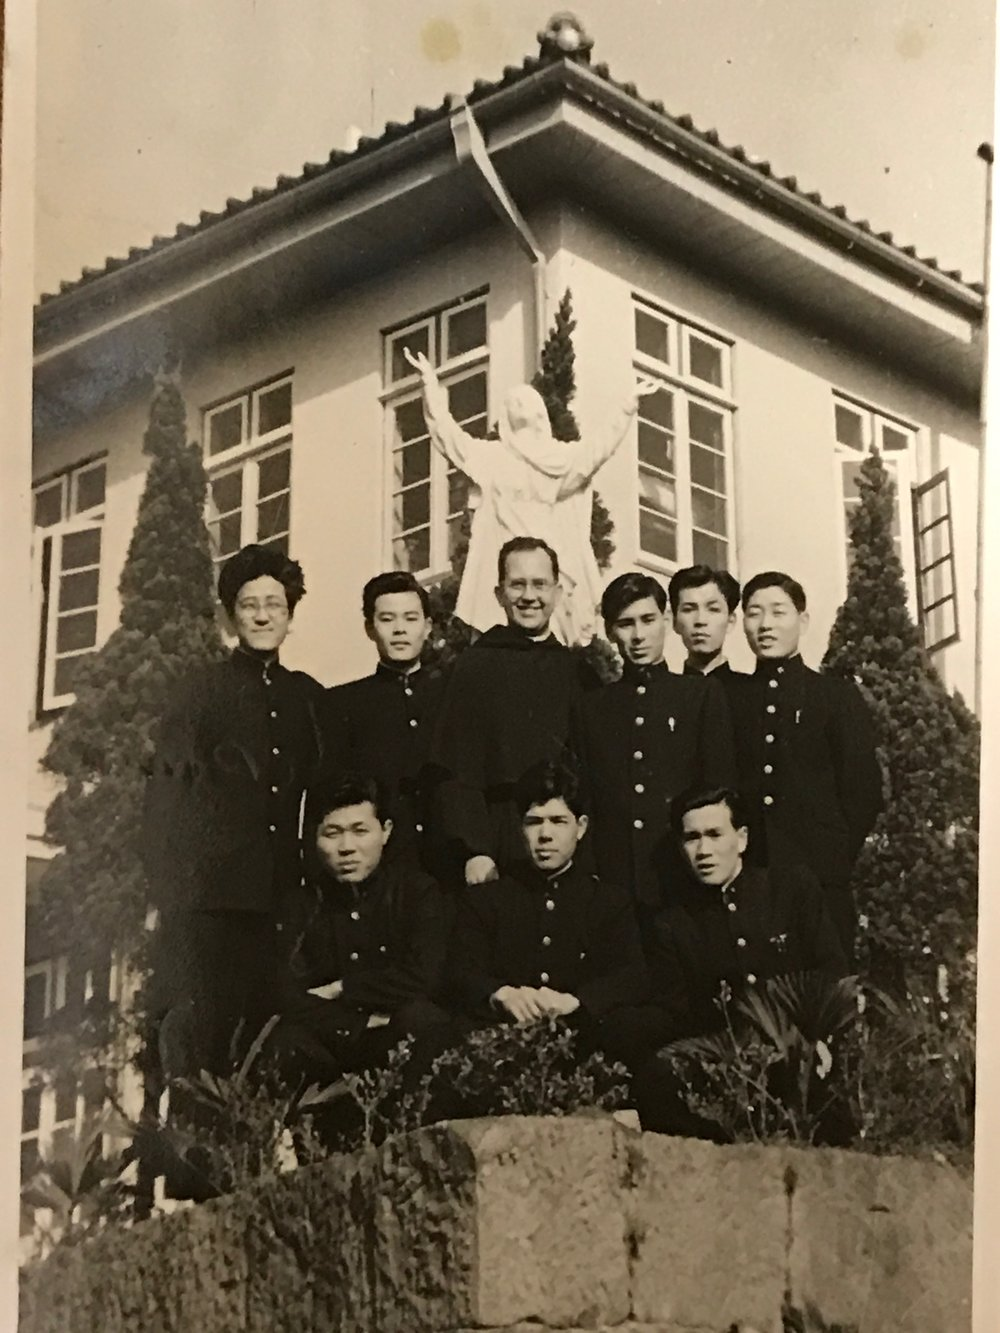 Father Krupa in front of the Hostel on the Nagasaki property that housed college students.